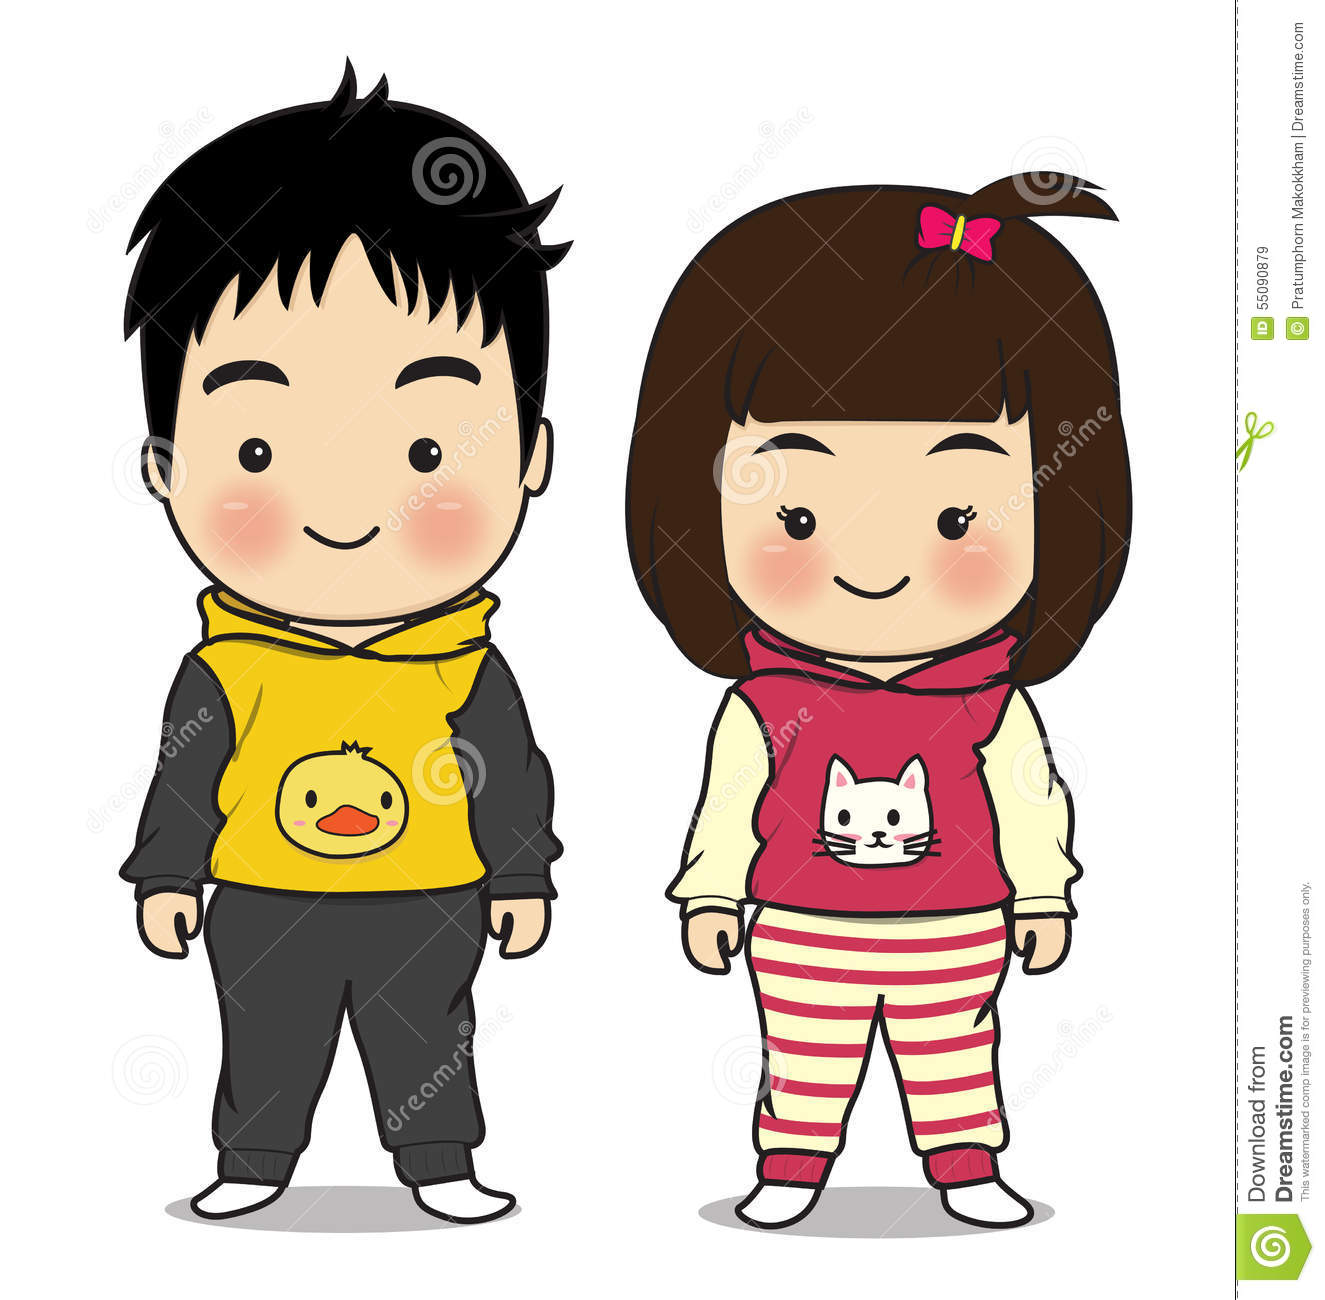 Cute girl and boy animated images